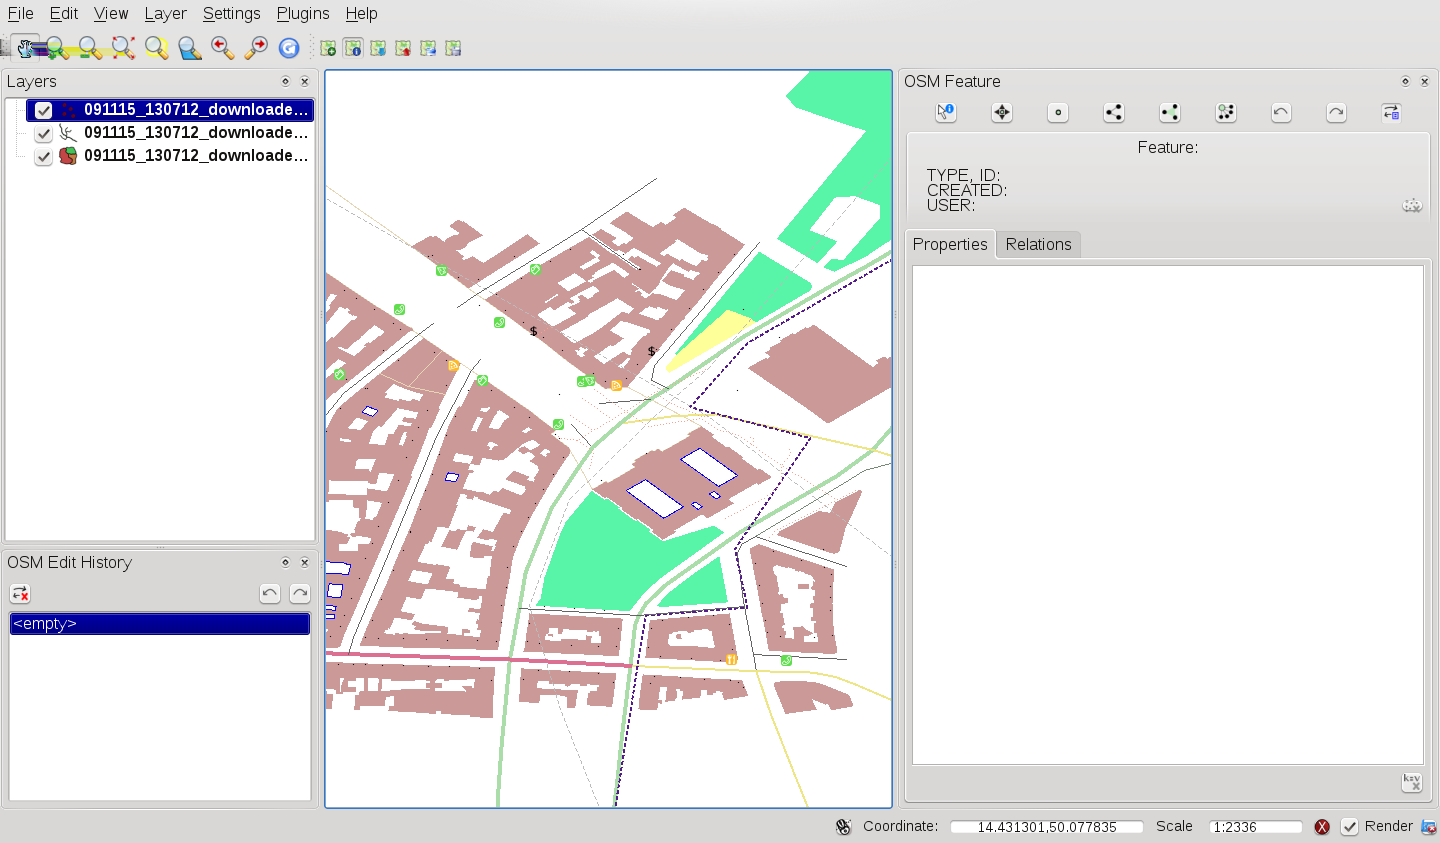 16.3 Installation The OpenStreetMap plugin is a core plugin inside QGIS. The OpenStreetMap plugin can be selected in the Plugin Manager as described in section Activer une extension principale. 16.